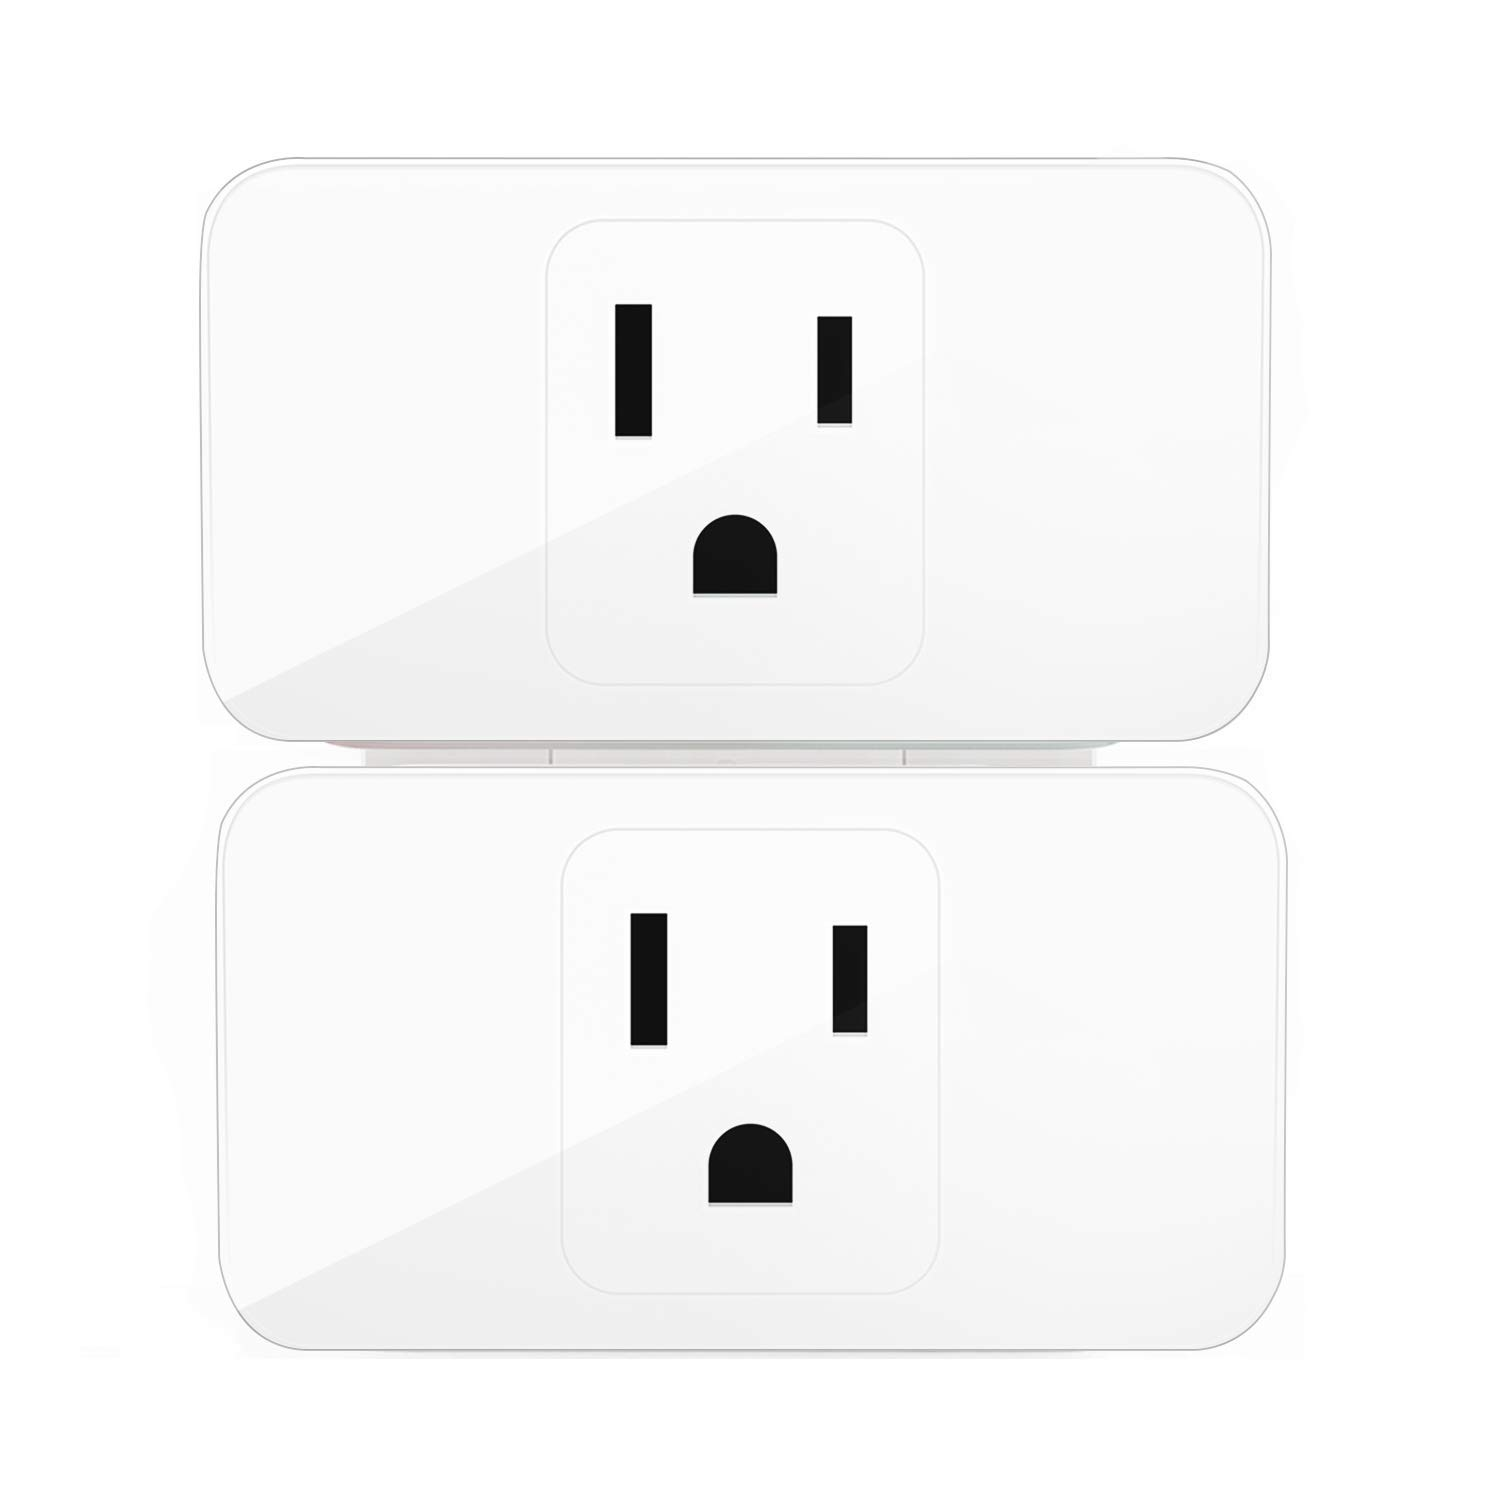 meross Smart Power Strip, Wi-Fi Surge Protector, Alexa, Google Home & IFTTT Supported, Remote Control, with 3 AC Outlets and 4 USB Ports -MSS425E